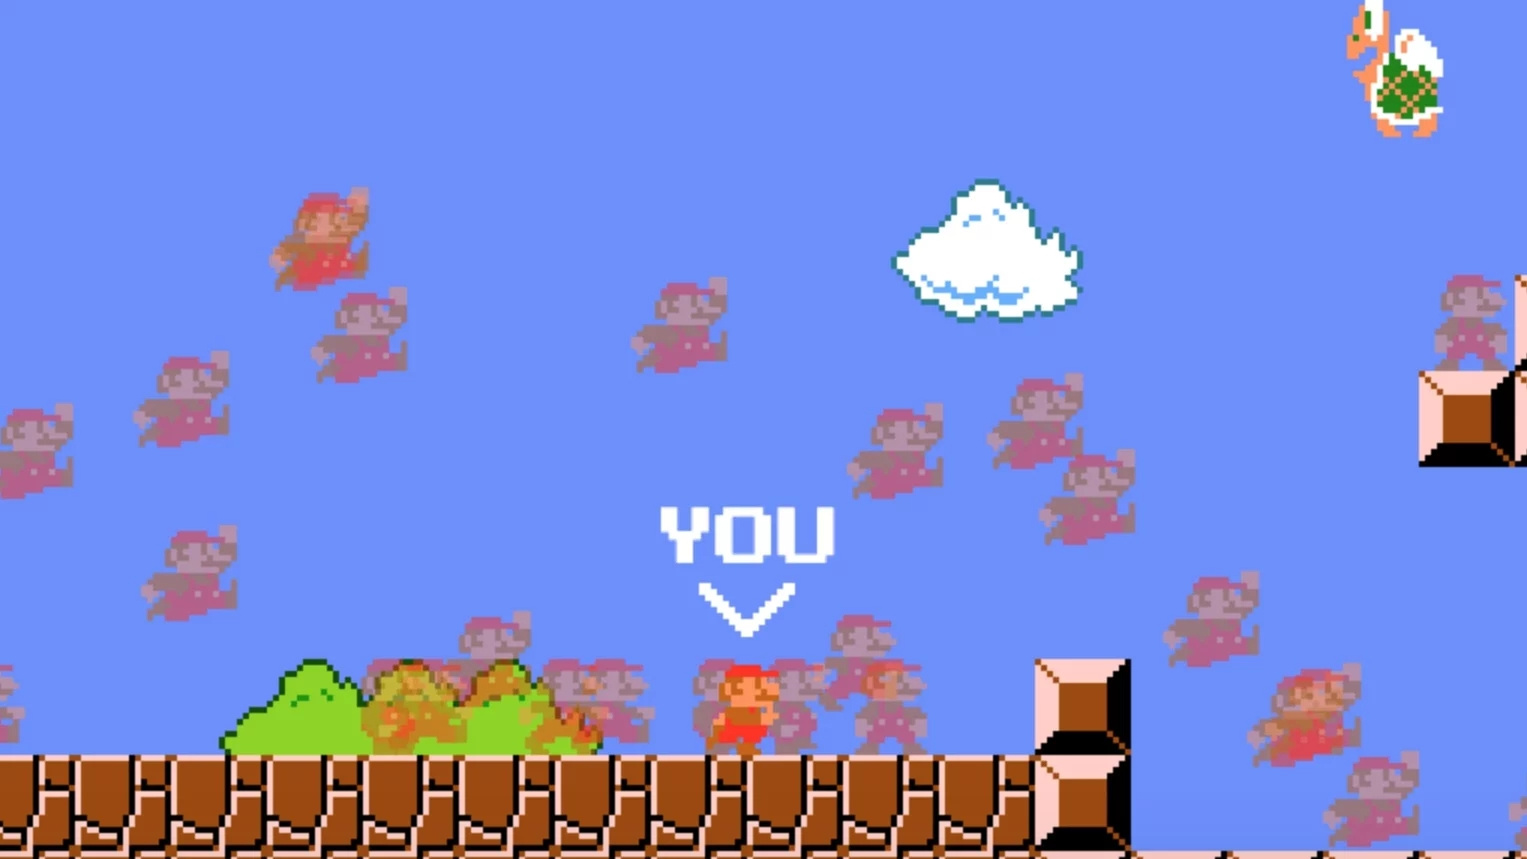 Super Mario Battle Royale Game Receives Takedown Notice From